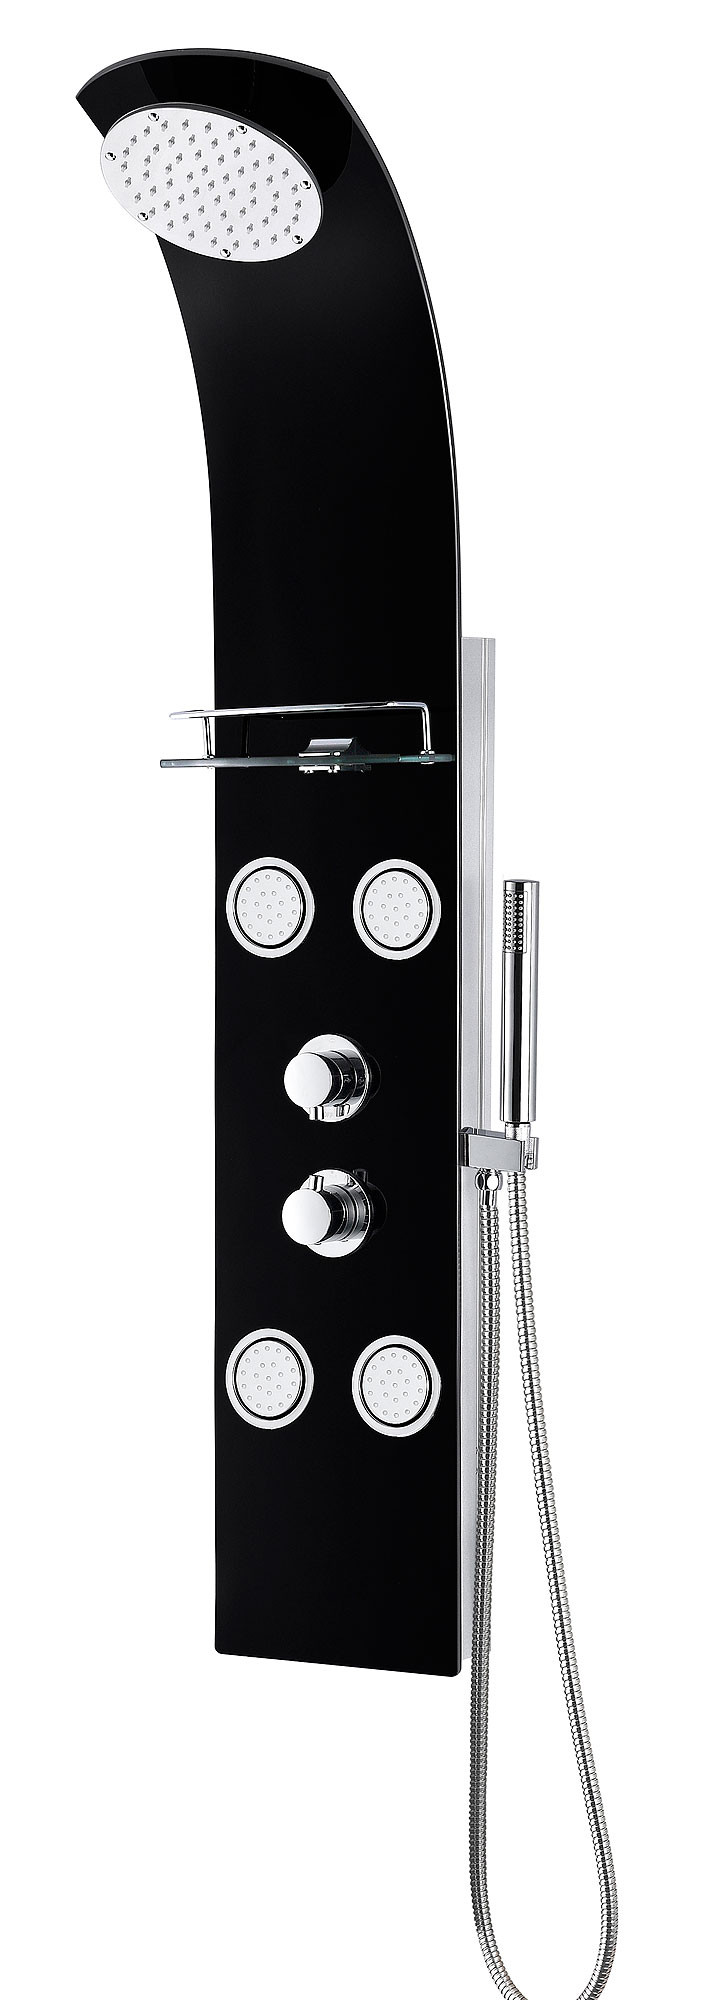 ANZZI SP-AZ047 Llano Shower Panel In Black With Shower Control Knobs